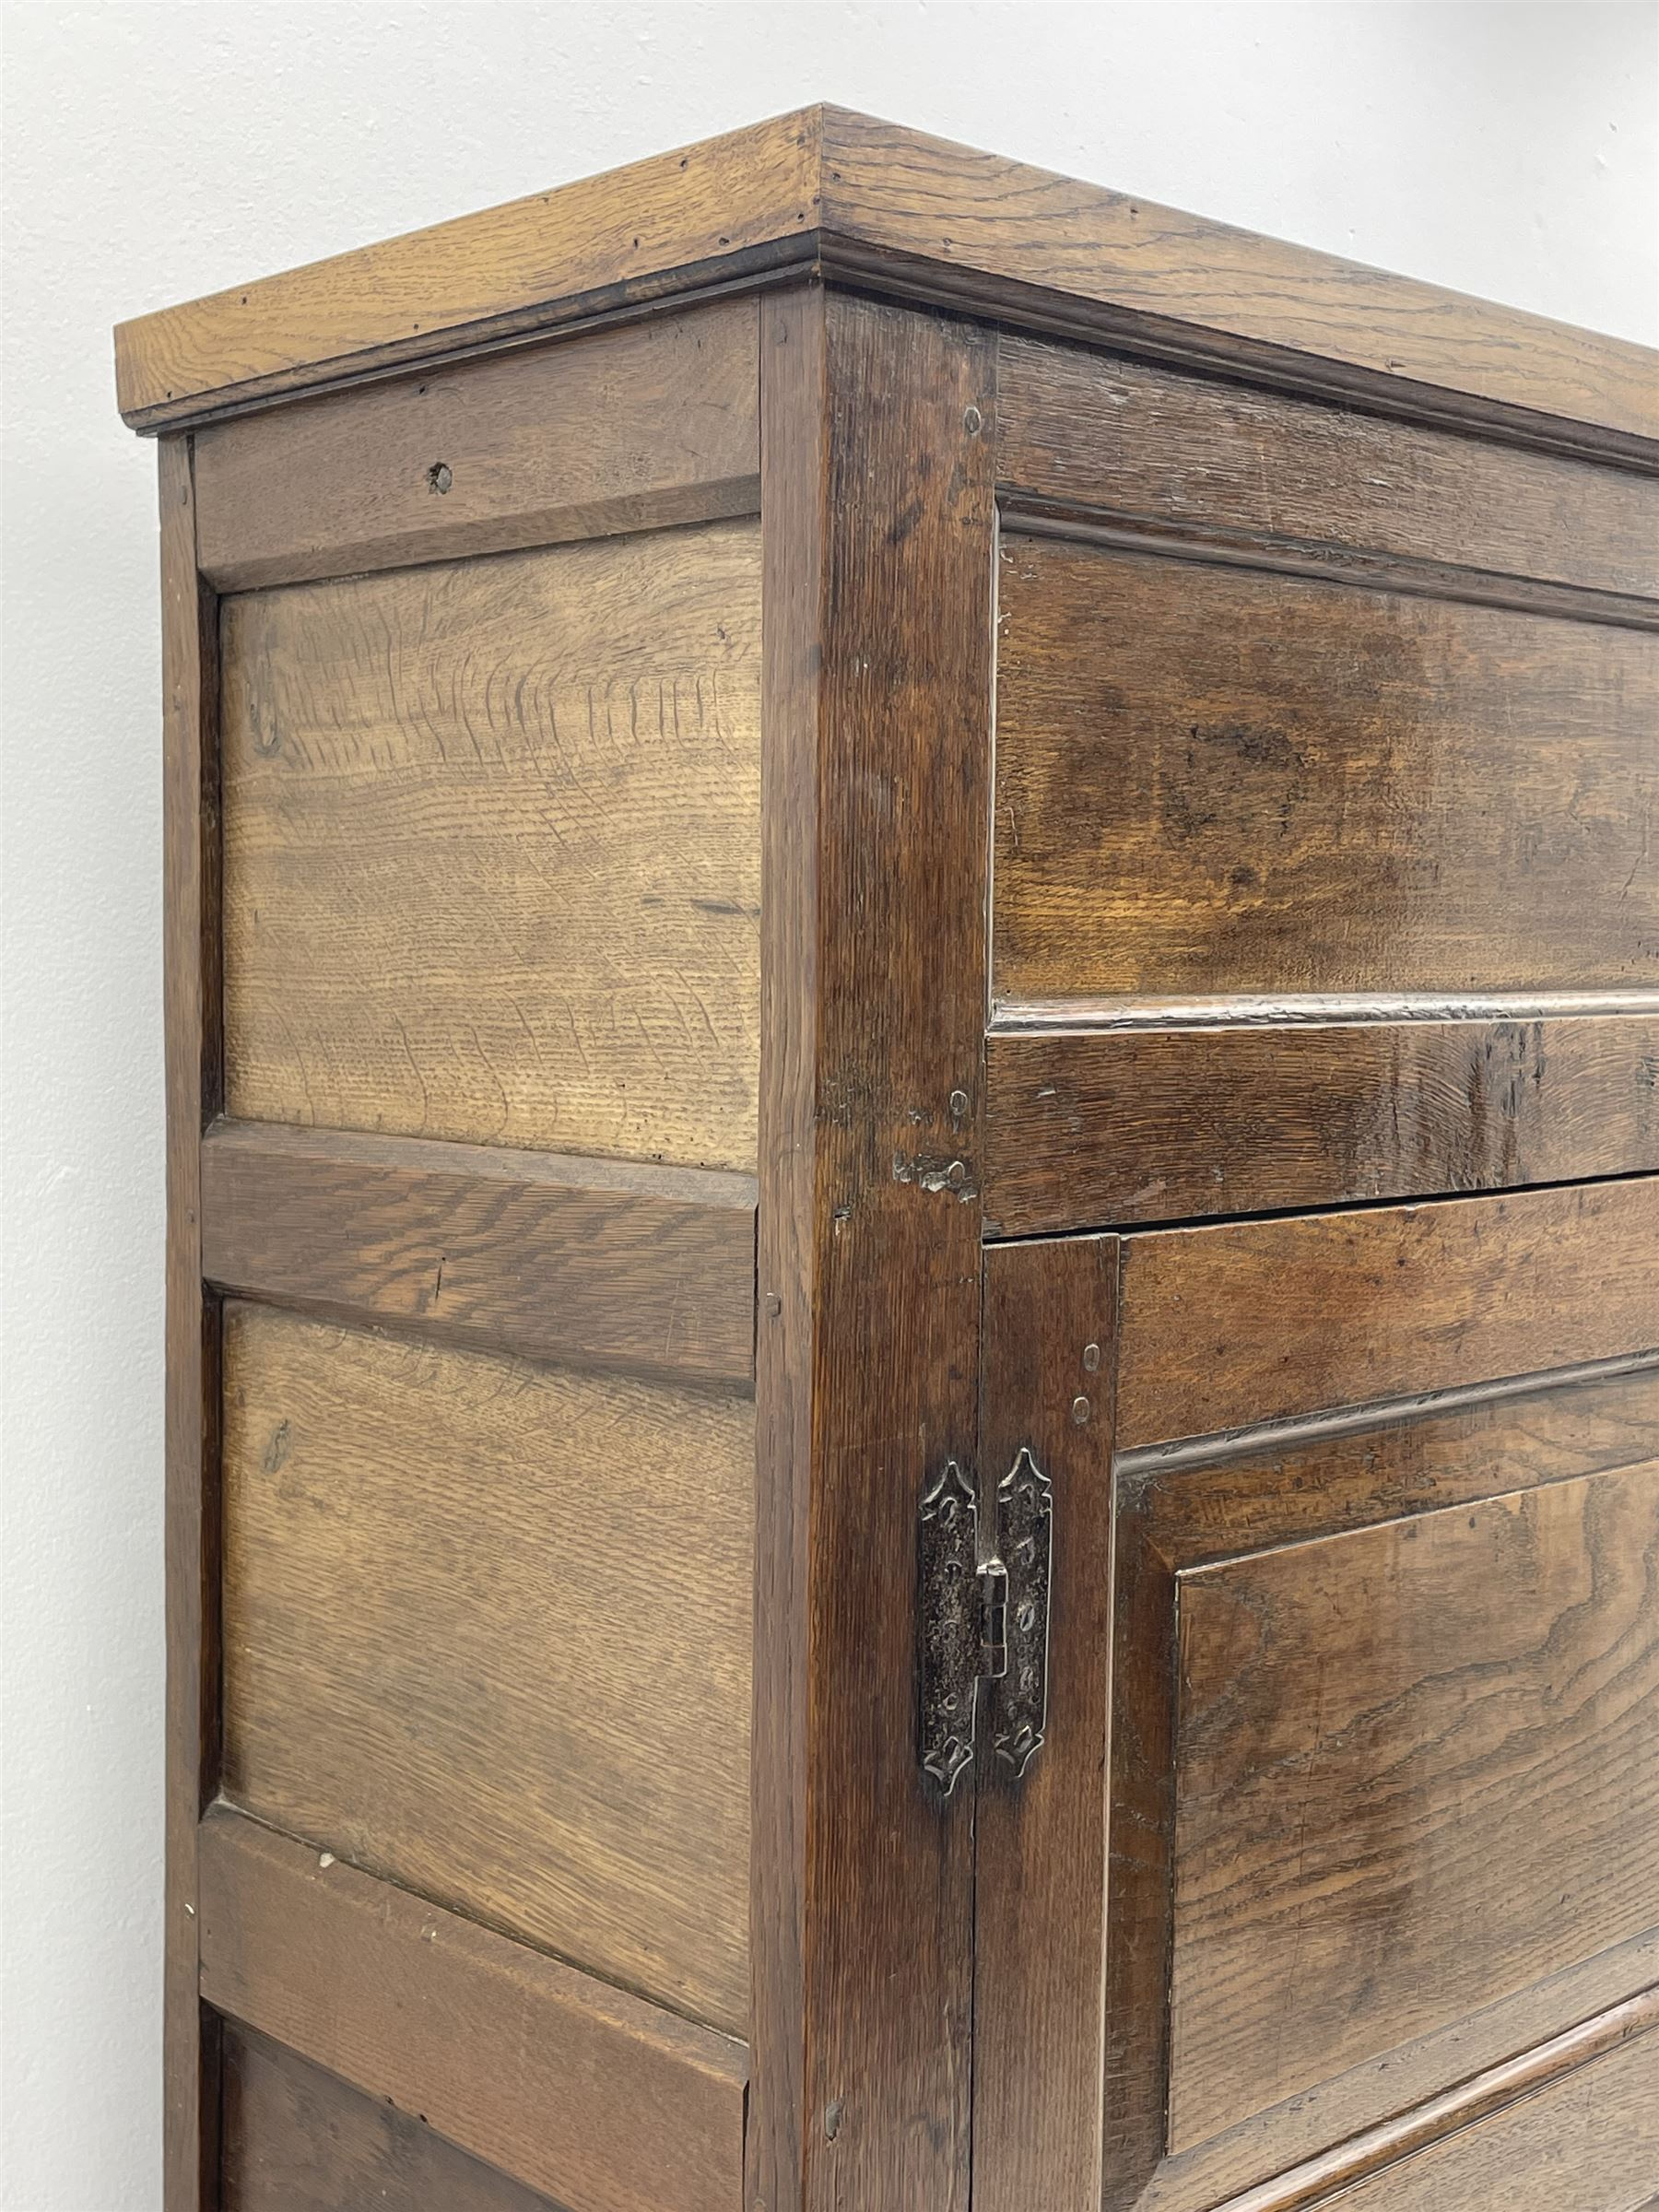 18th century and later oak livery cupboard - Image 7 of 8